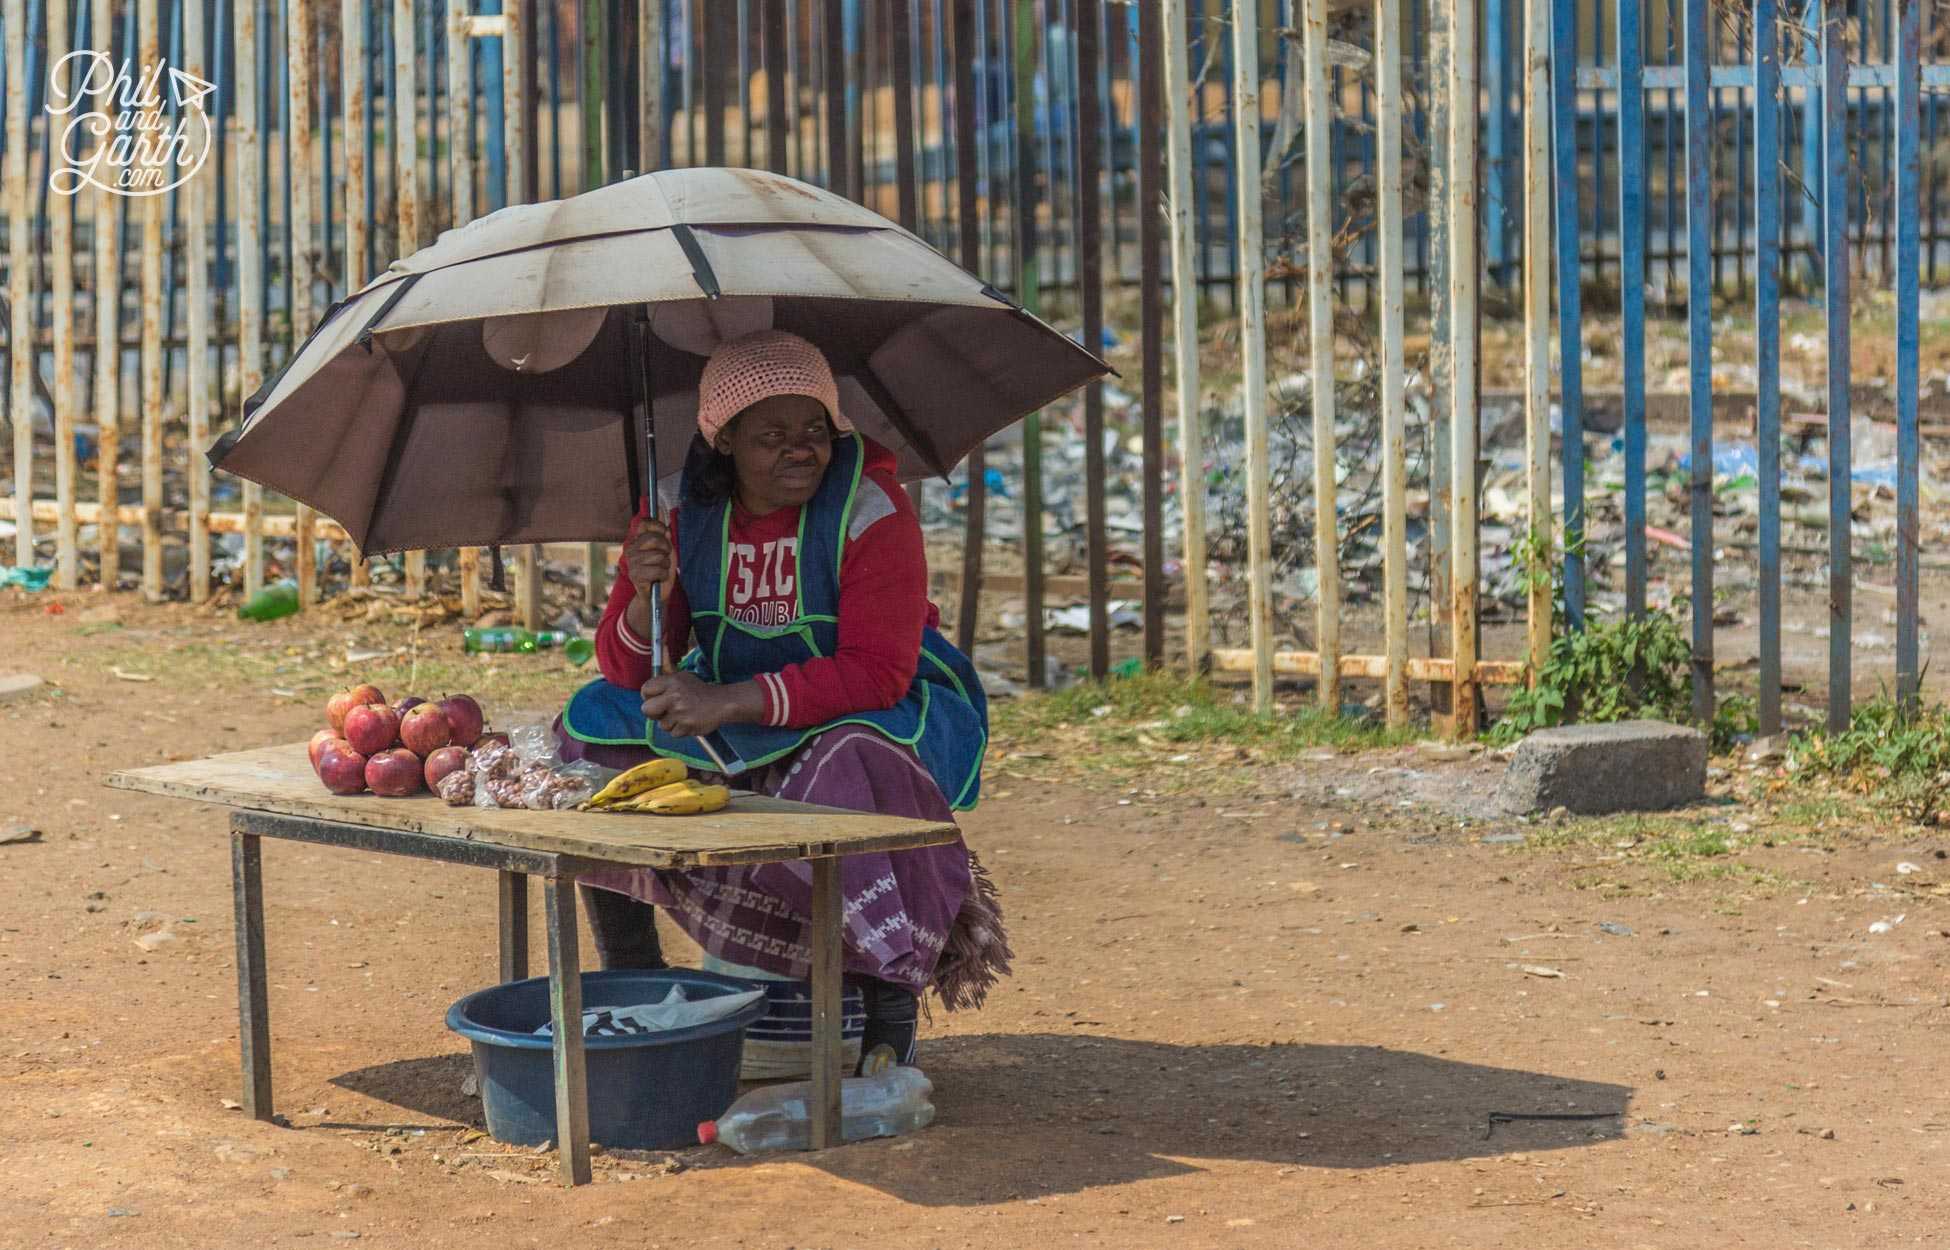 A lady sells a small amount of bananas, apples and nuts